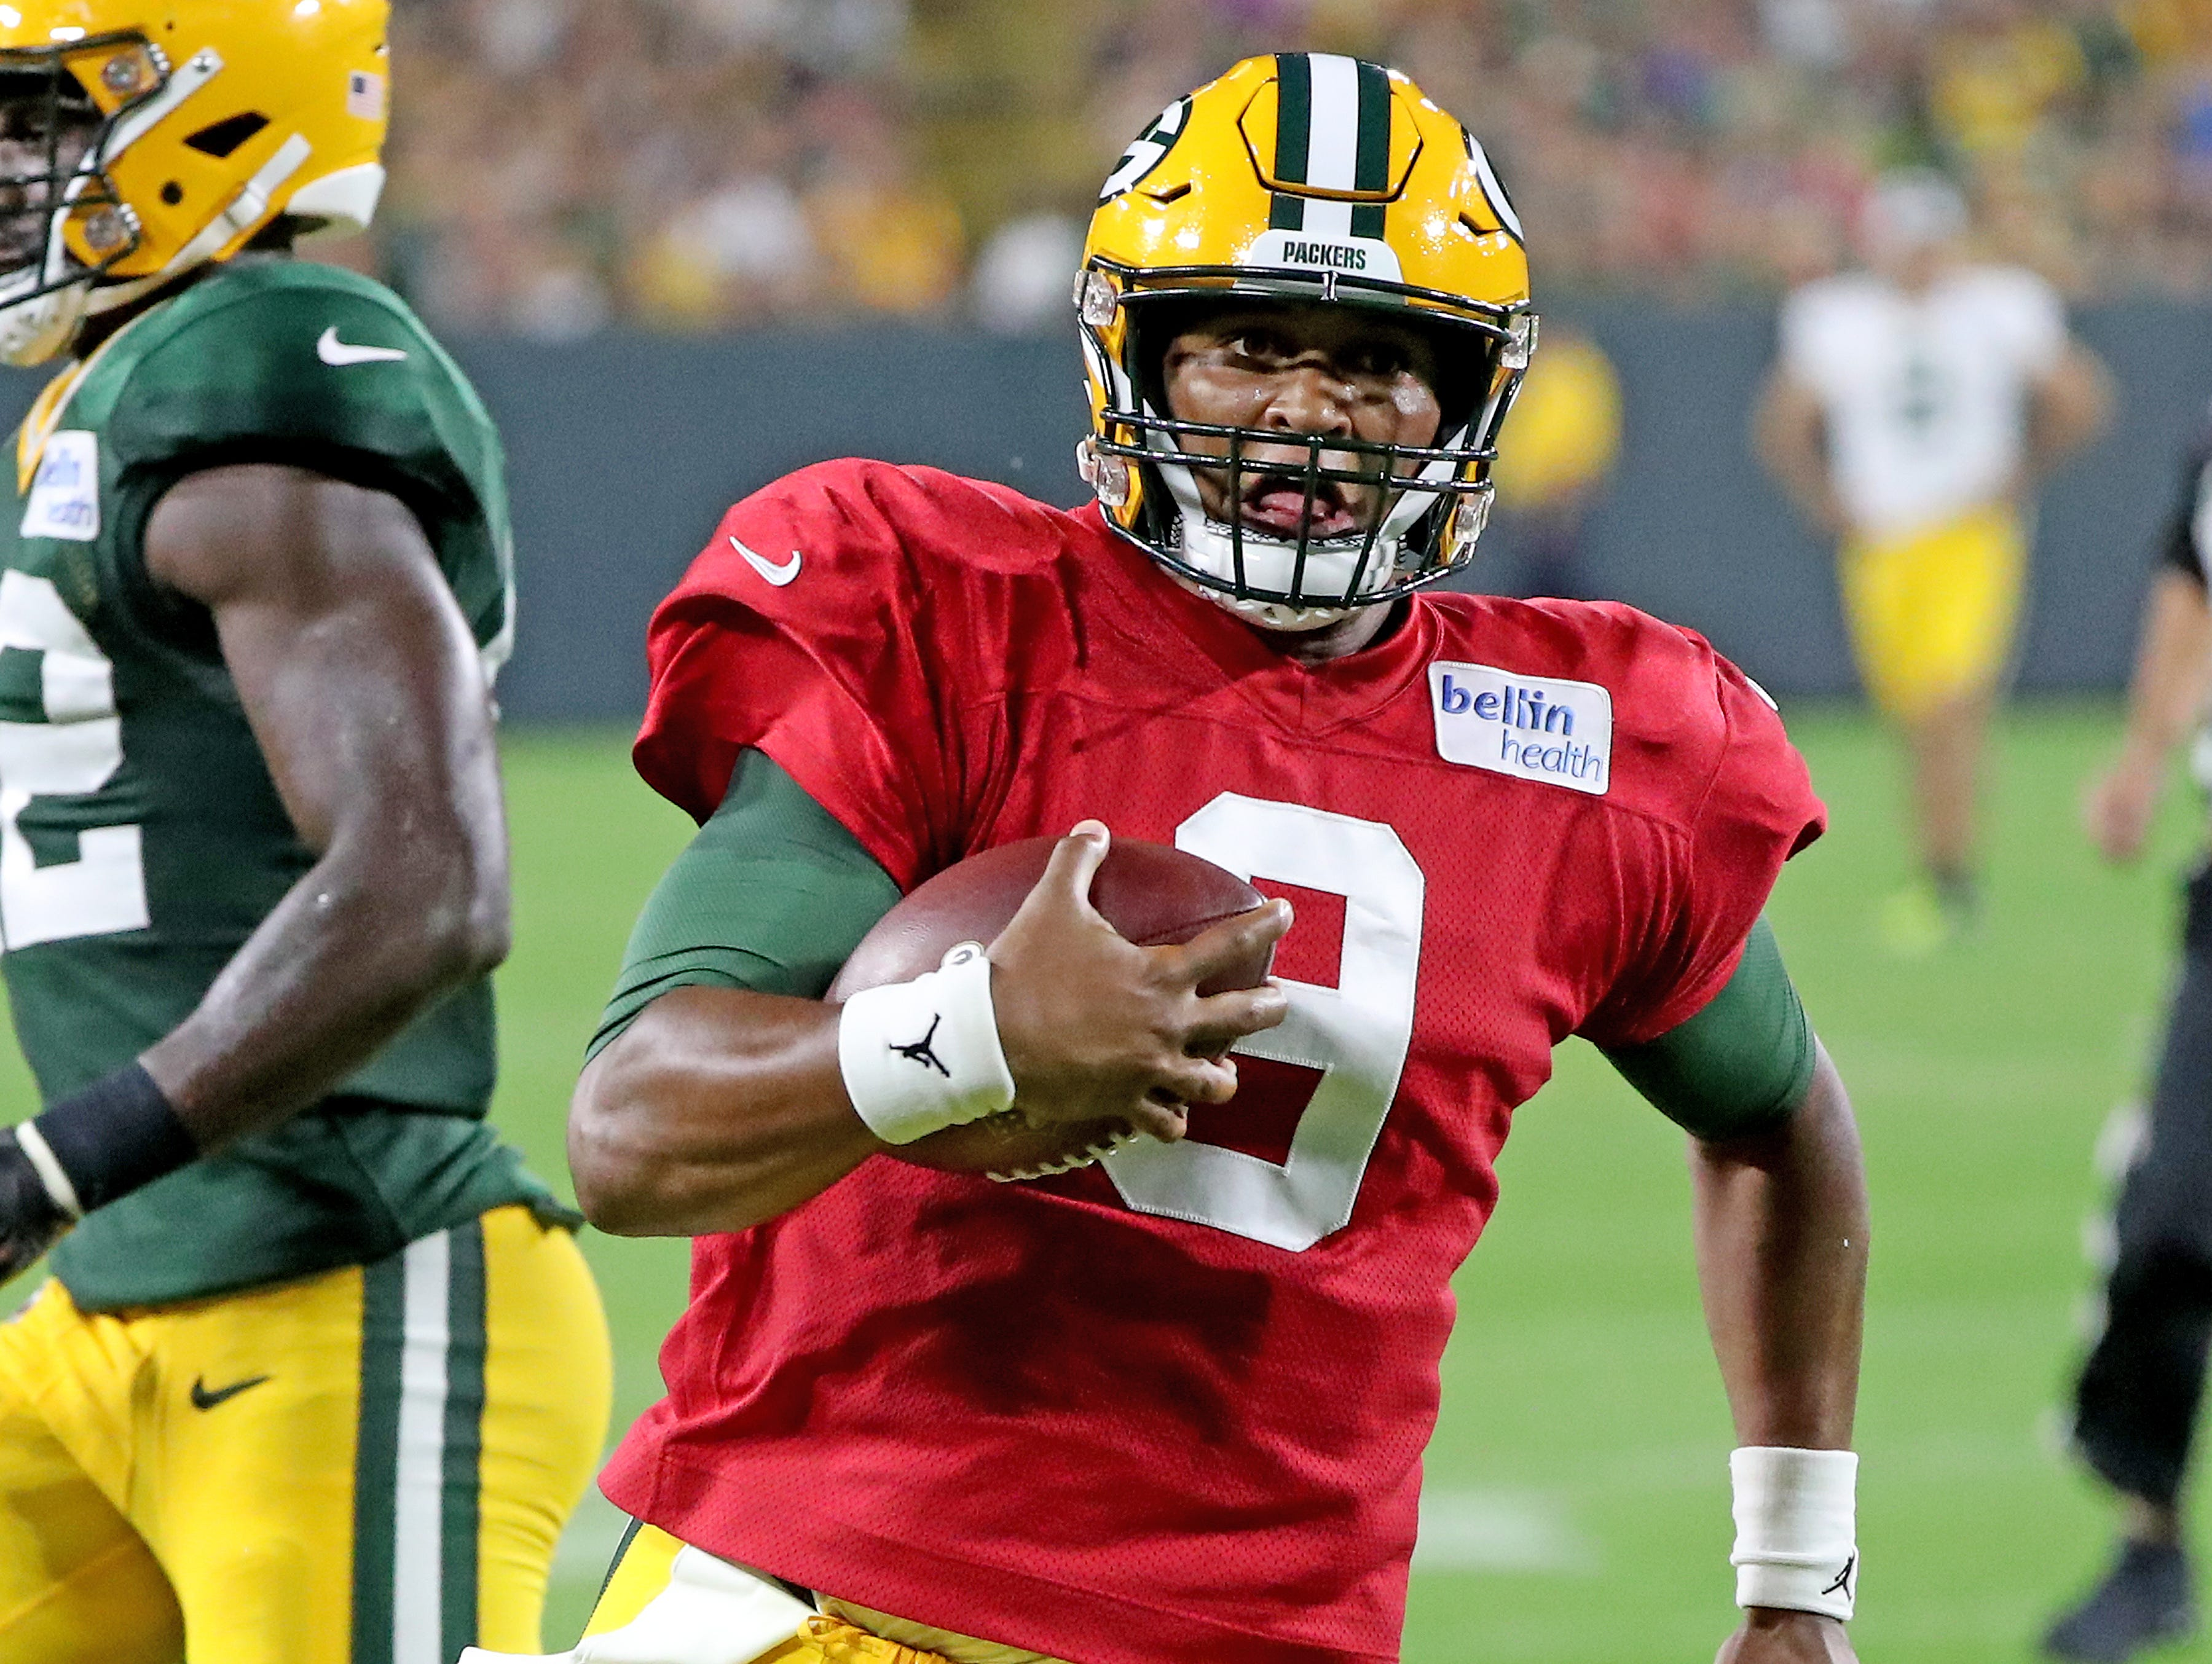 Green Bay Packers quarterback DeShone Kizer (9) runs to the goal line during Green Bay Packers Family Night  Saturday, August 4, 2018 at Lambeau Field in Green Bay, Wis.,